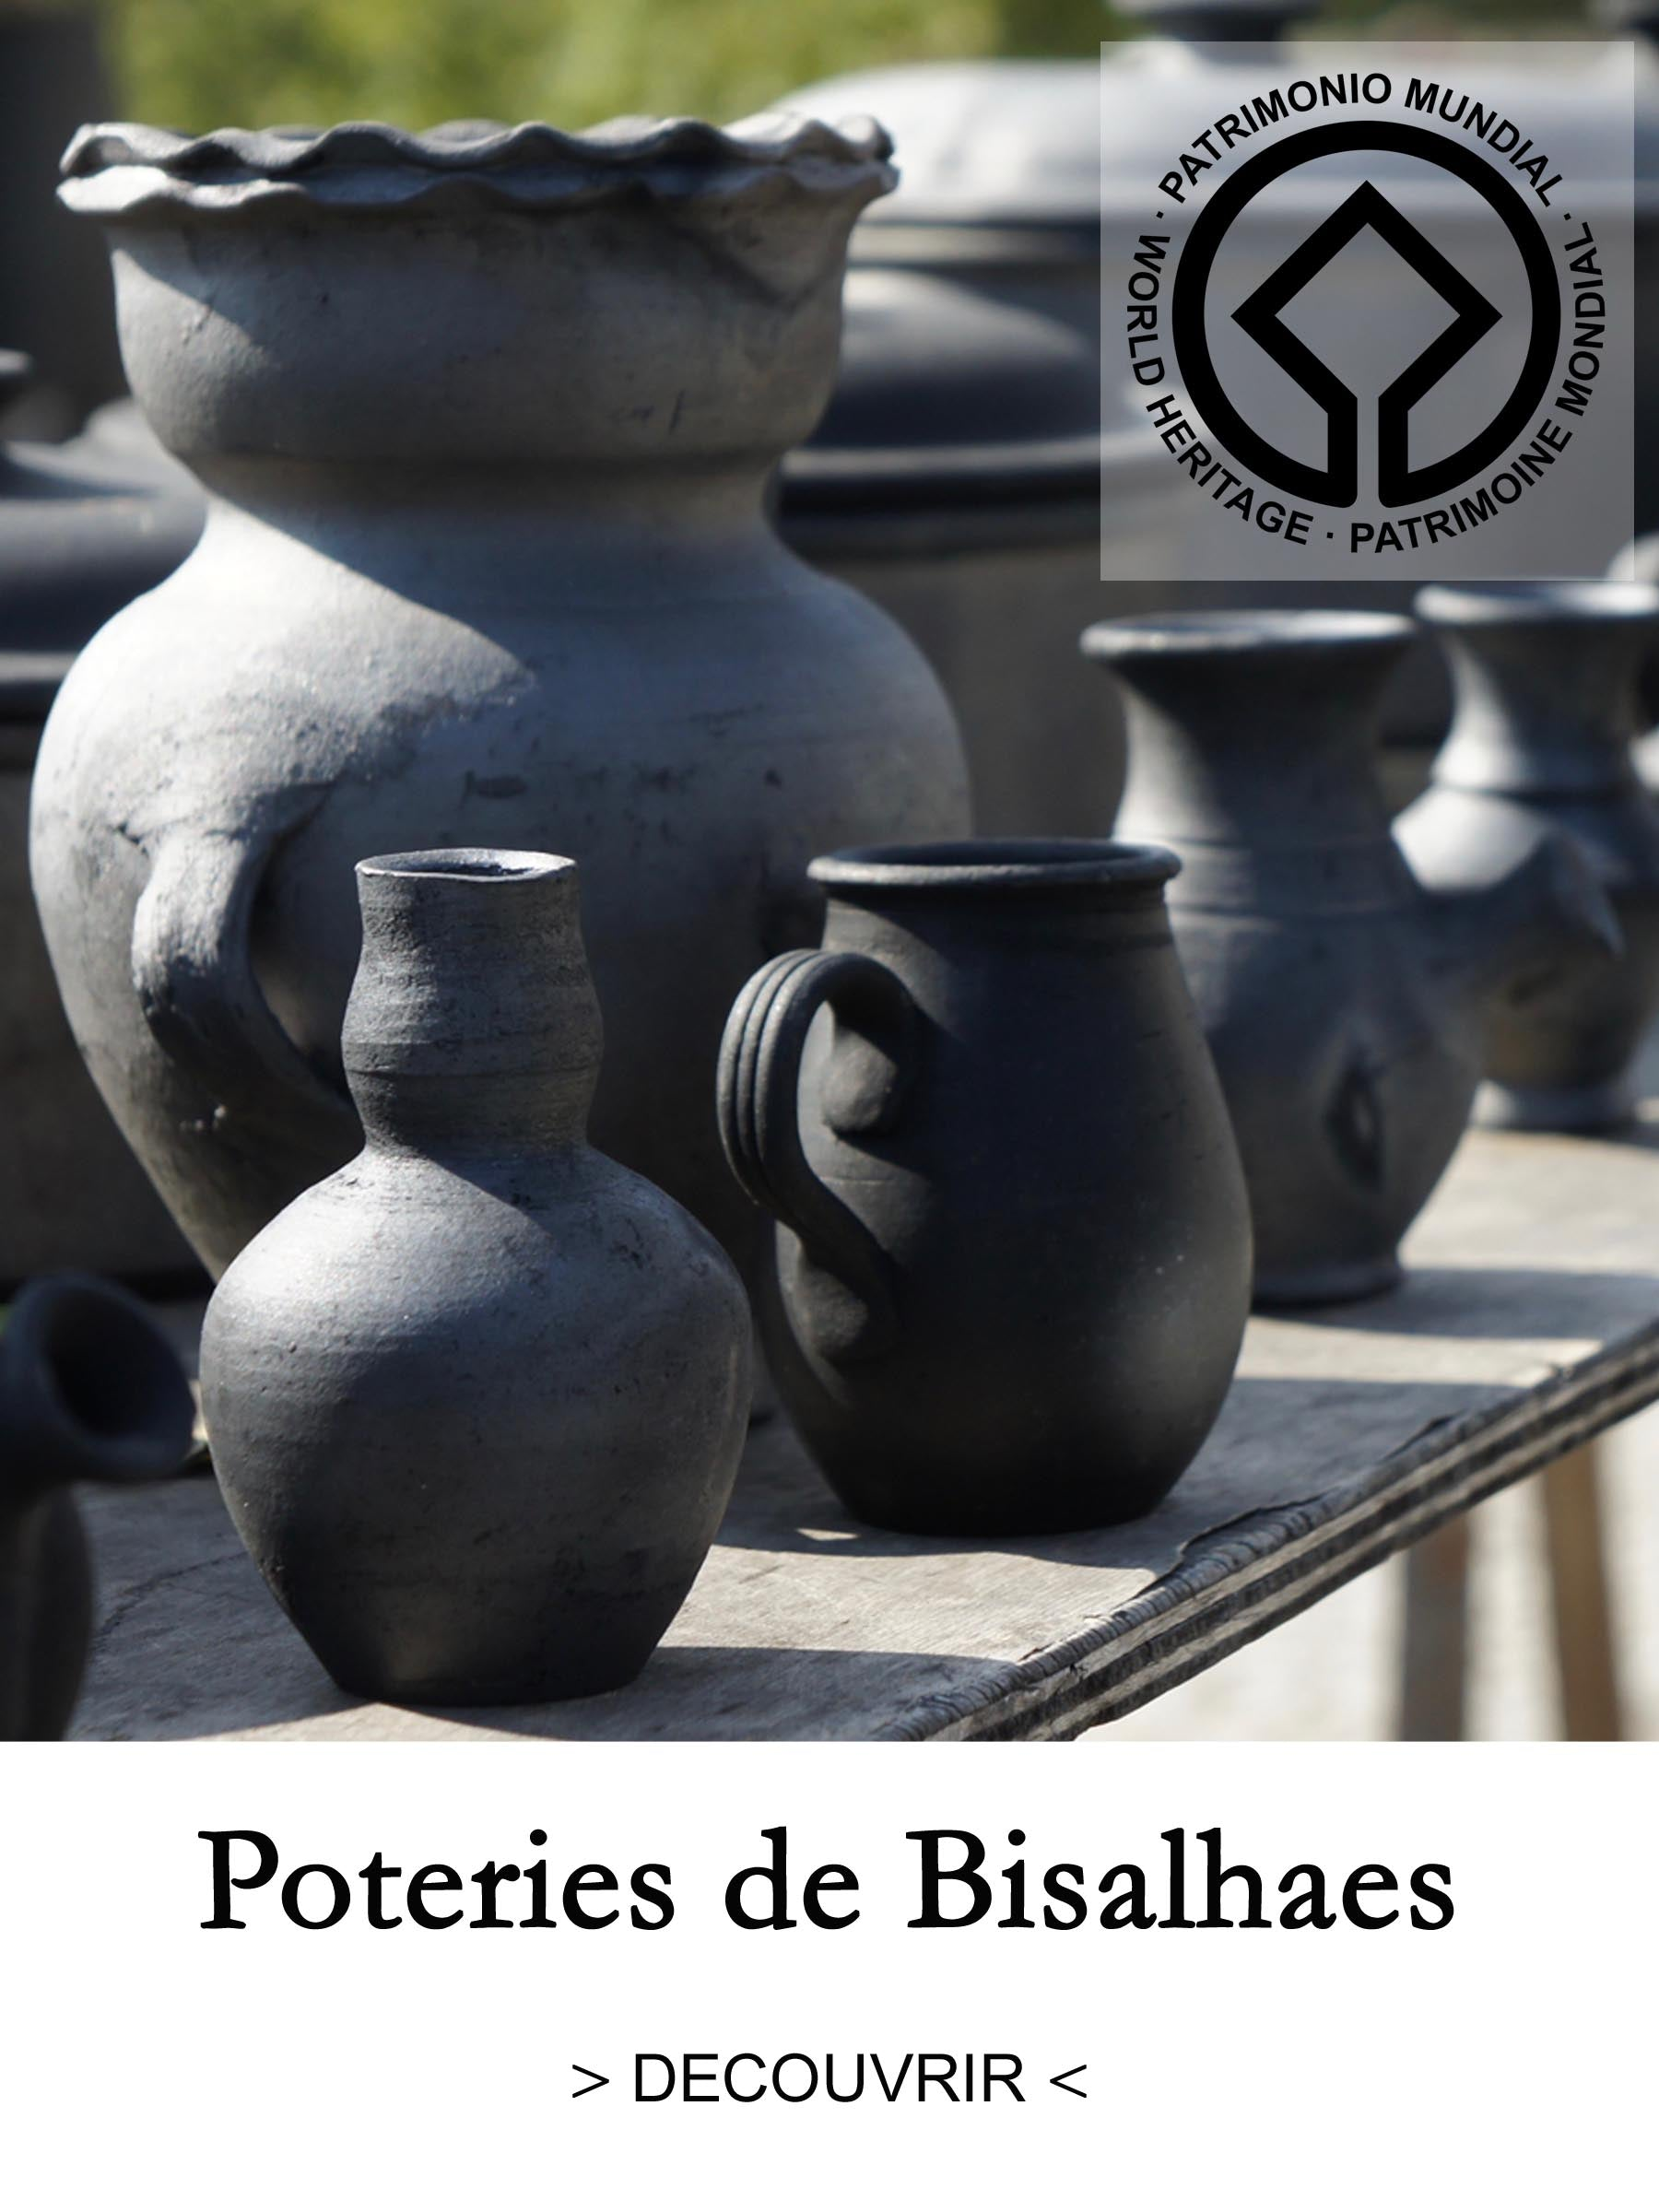 Poteries noires du Portugal - Bisalhaes